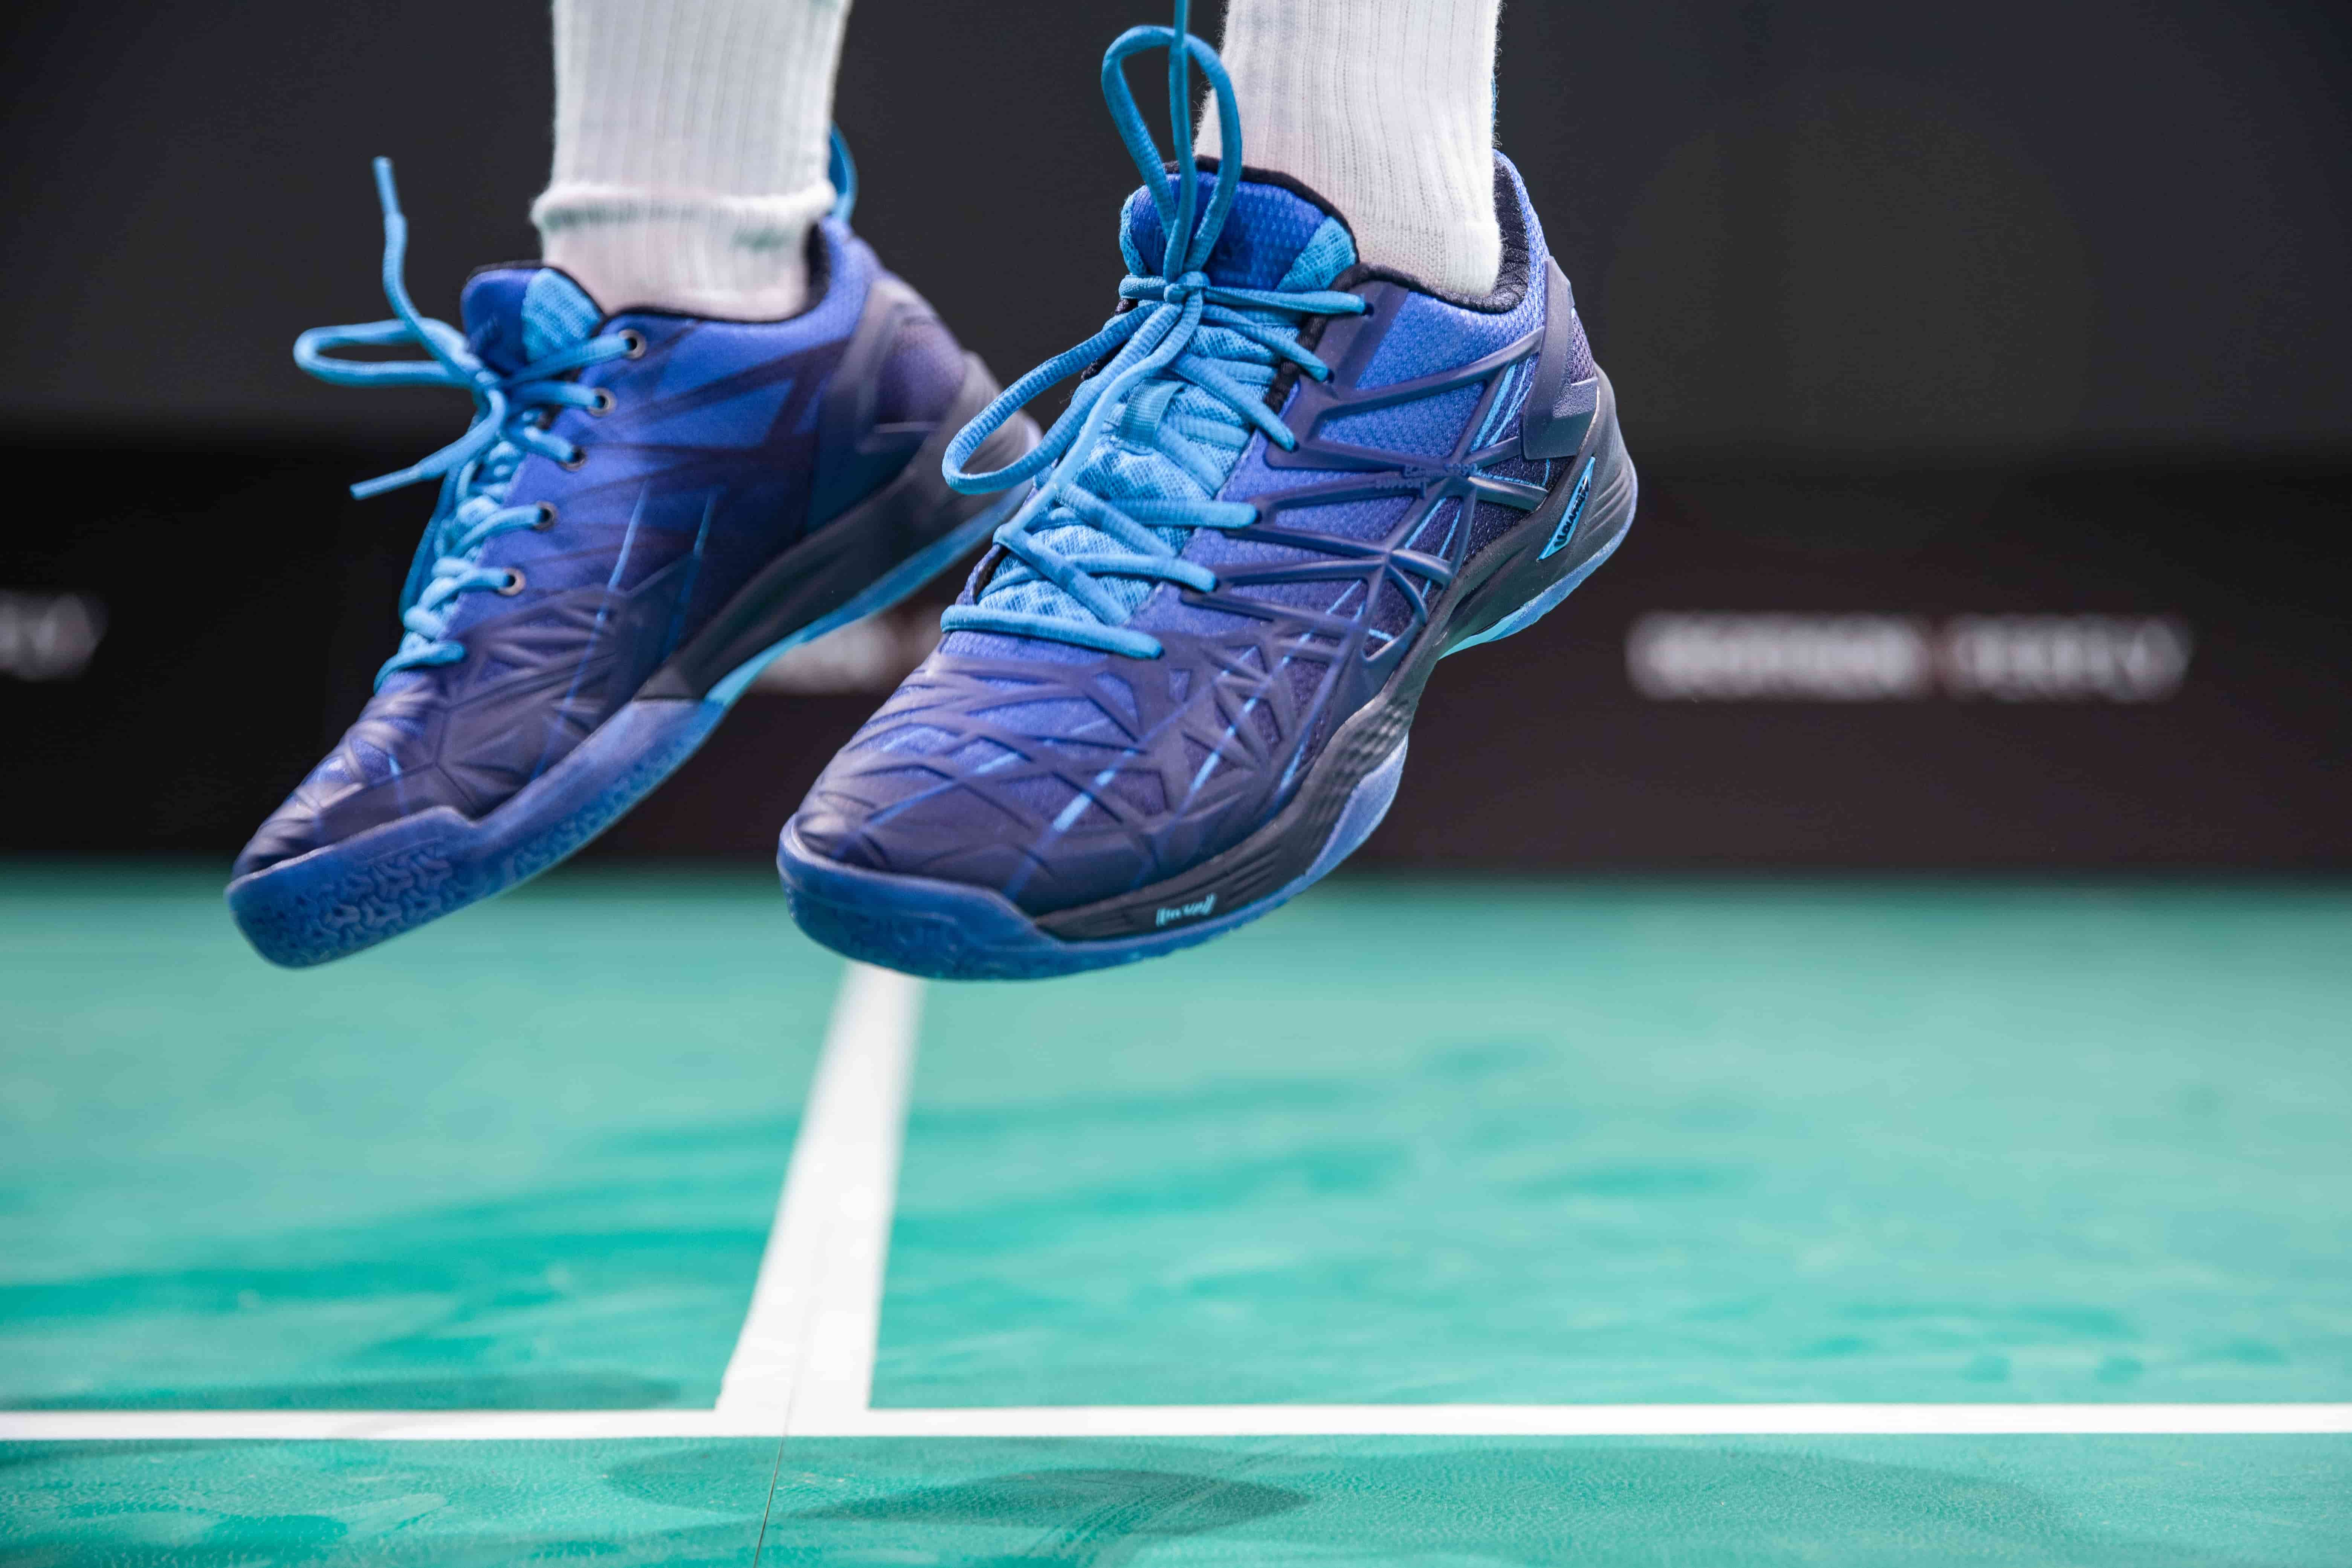 How to Take Care of your Badminton Shoes